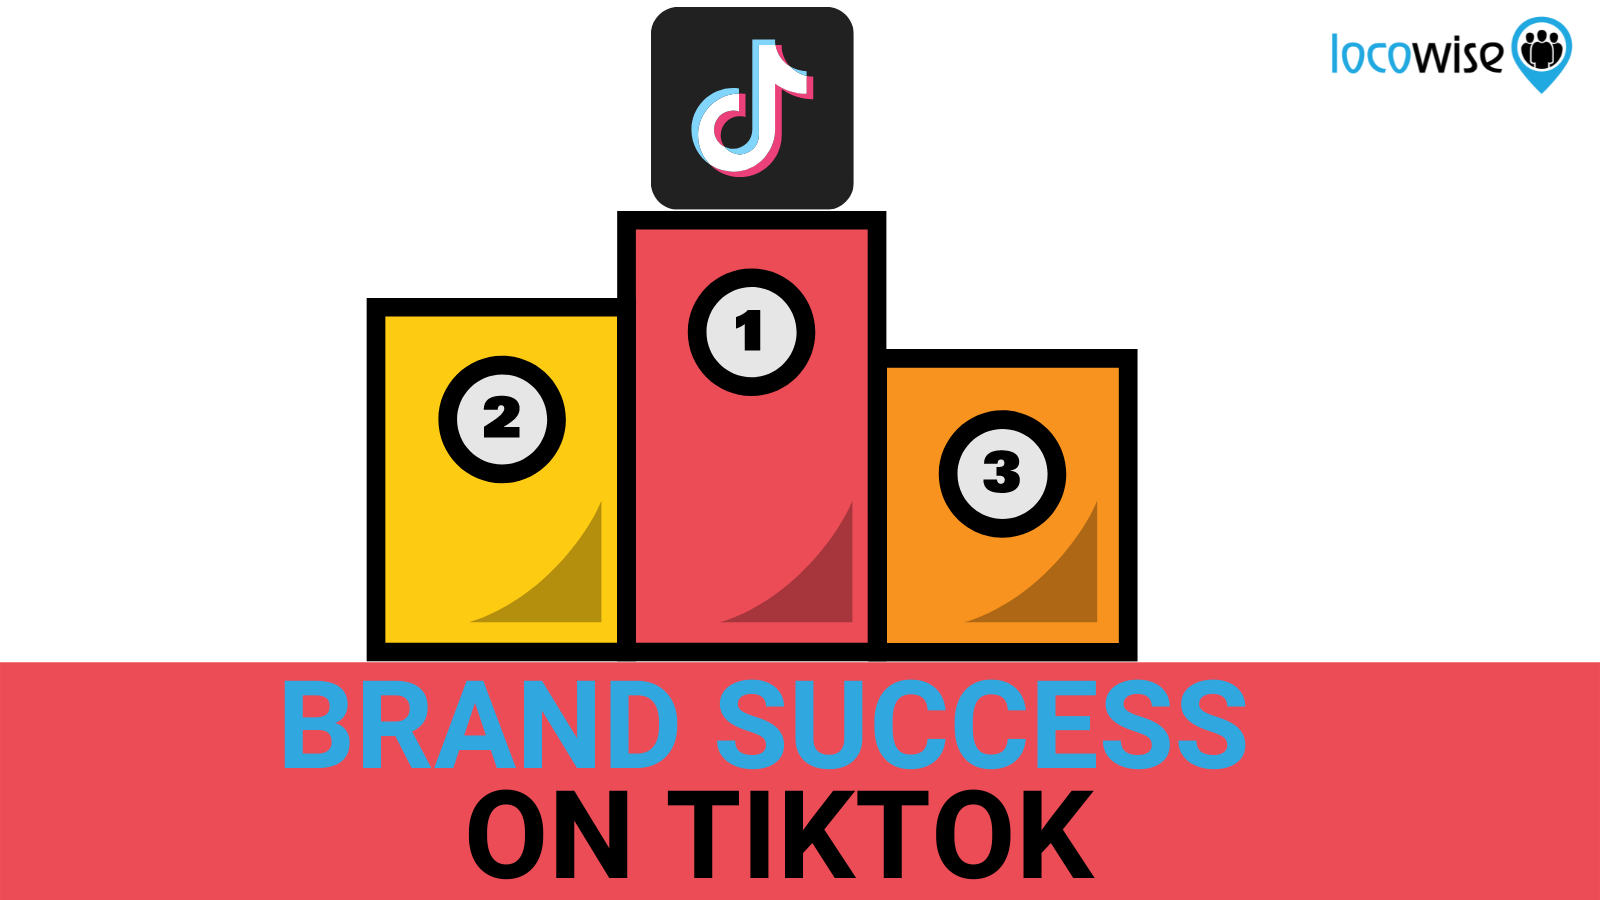 How to Be Successful on TikTok